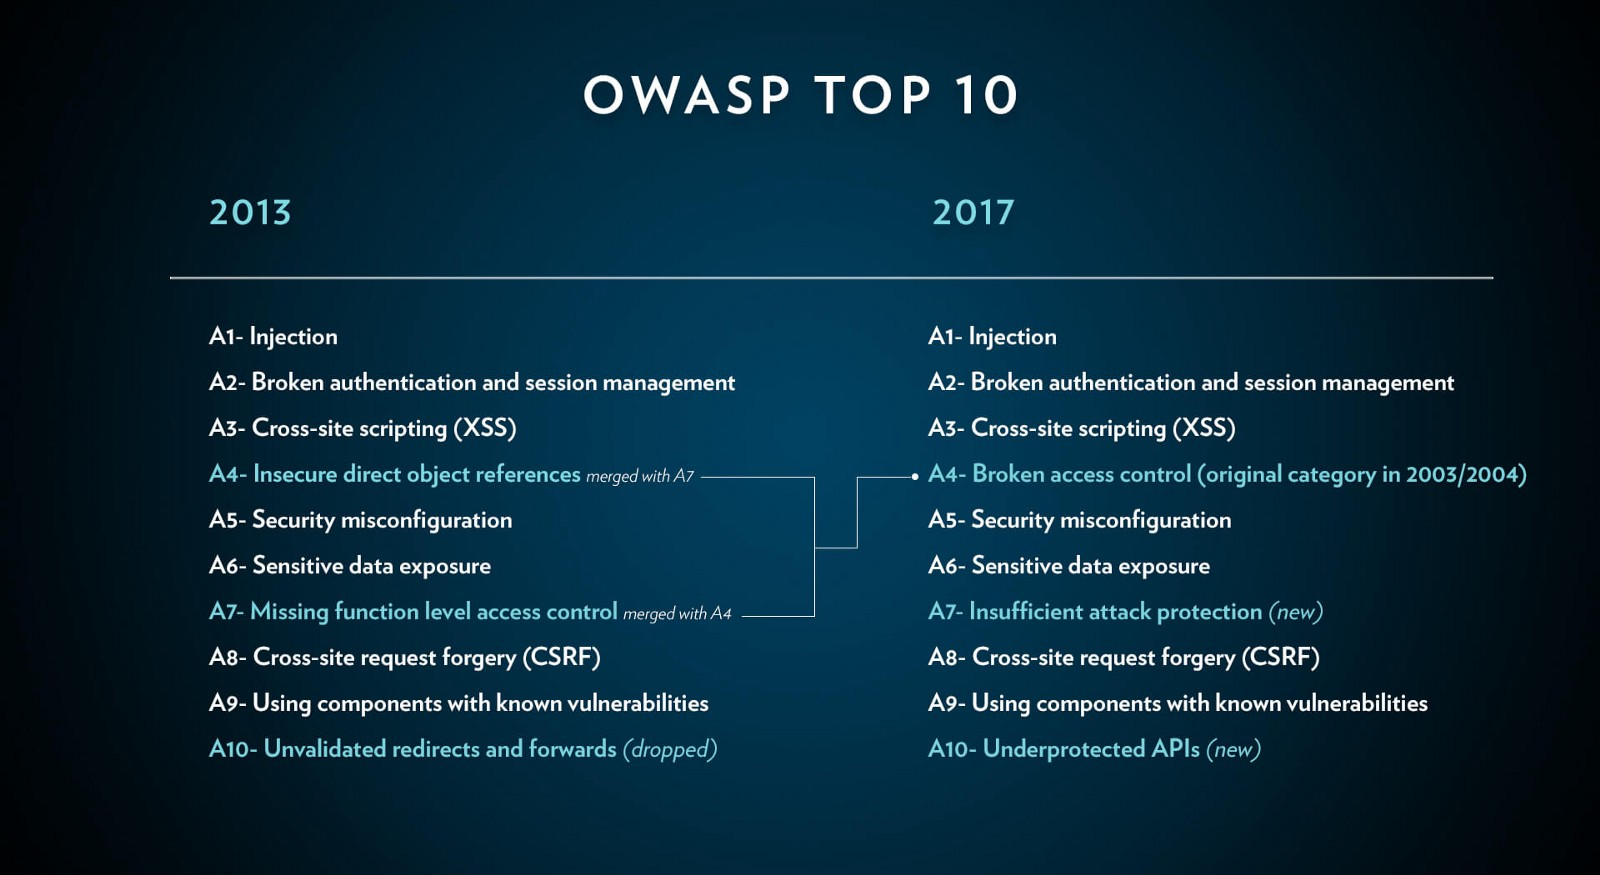 This Dangerous New World Web Development Through The Prism Of Database Application Security According To Owasp Such Vulnerabilities Are Included In Top Three Main Safety Concerns For Applications As You Can See List Above